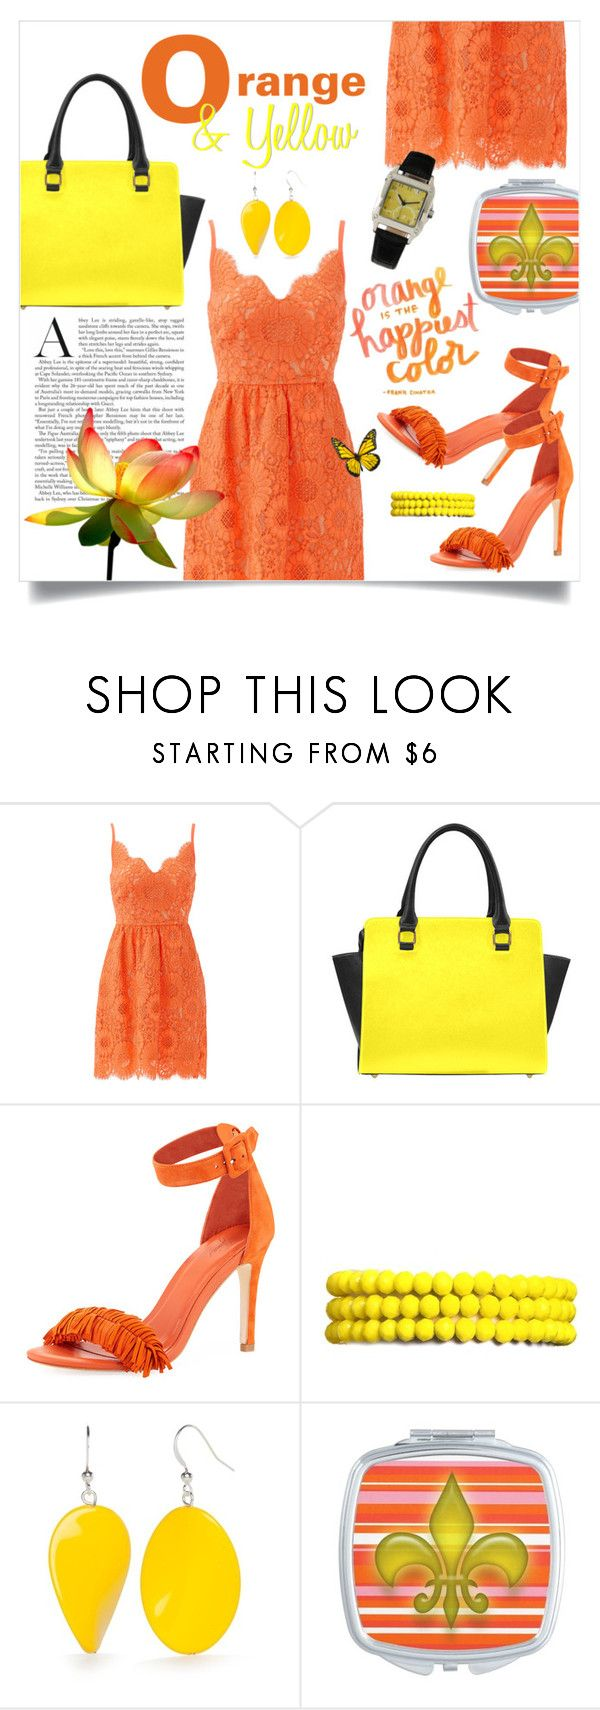 """""""Orange & Yellow Vibrant Summer Look"""" by colormegirly ❤ liked on Polyvore featuring Trina Turk, Joie, Amrita Singh, Kim Rogers, handbags, fashionset and polyvoreset"""